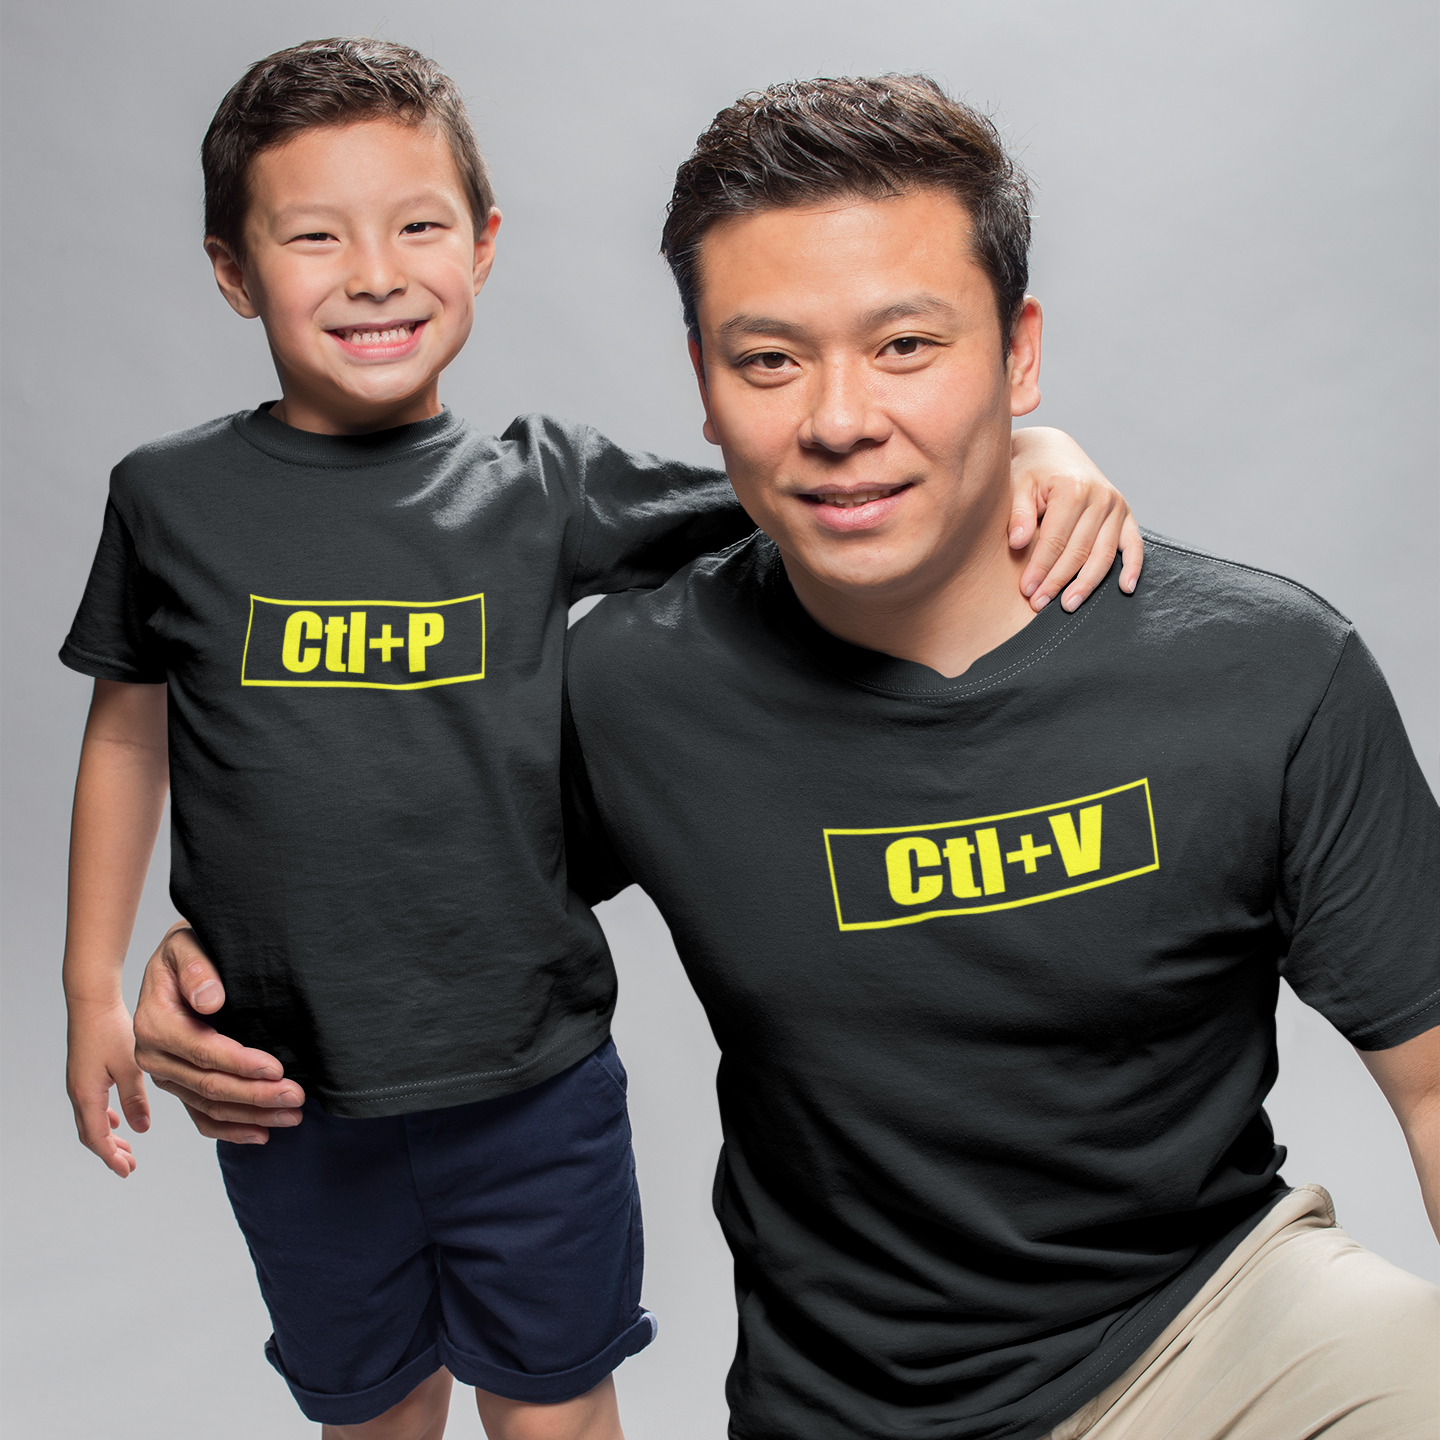 Sprinklecart Ctl+P Ctl+V Printed Matching T Shirt for Father and Son | Black Cotton T Shirt Set